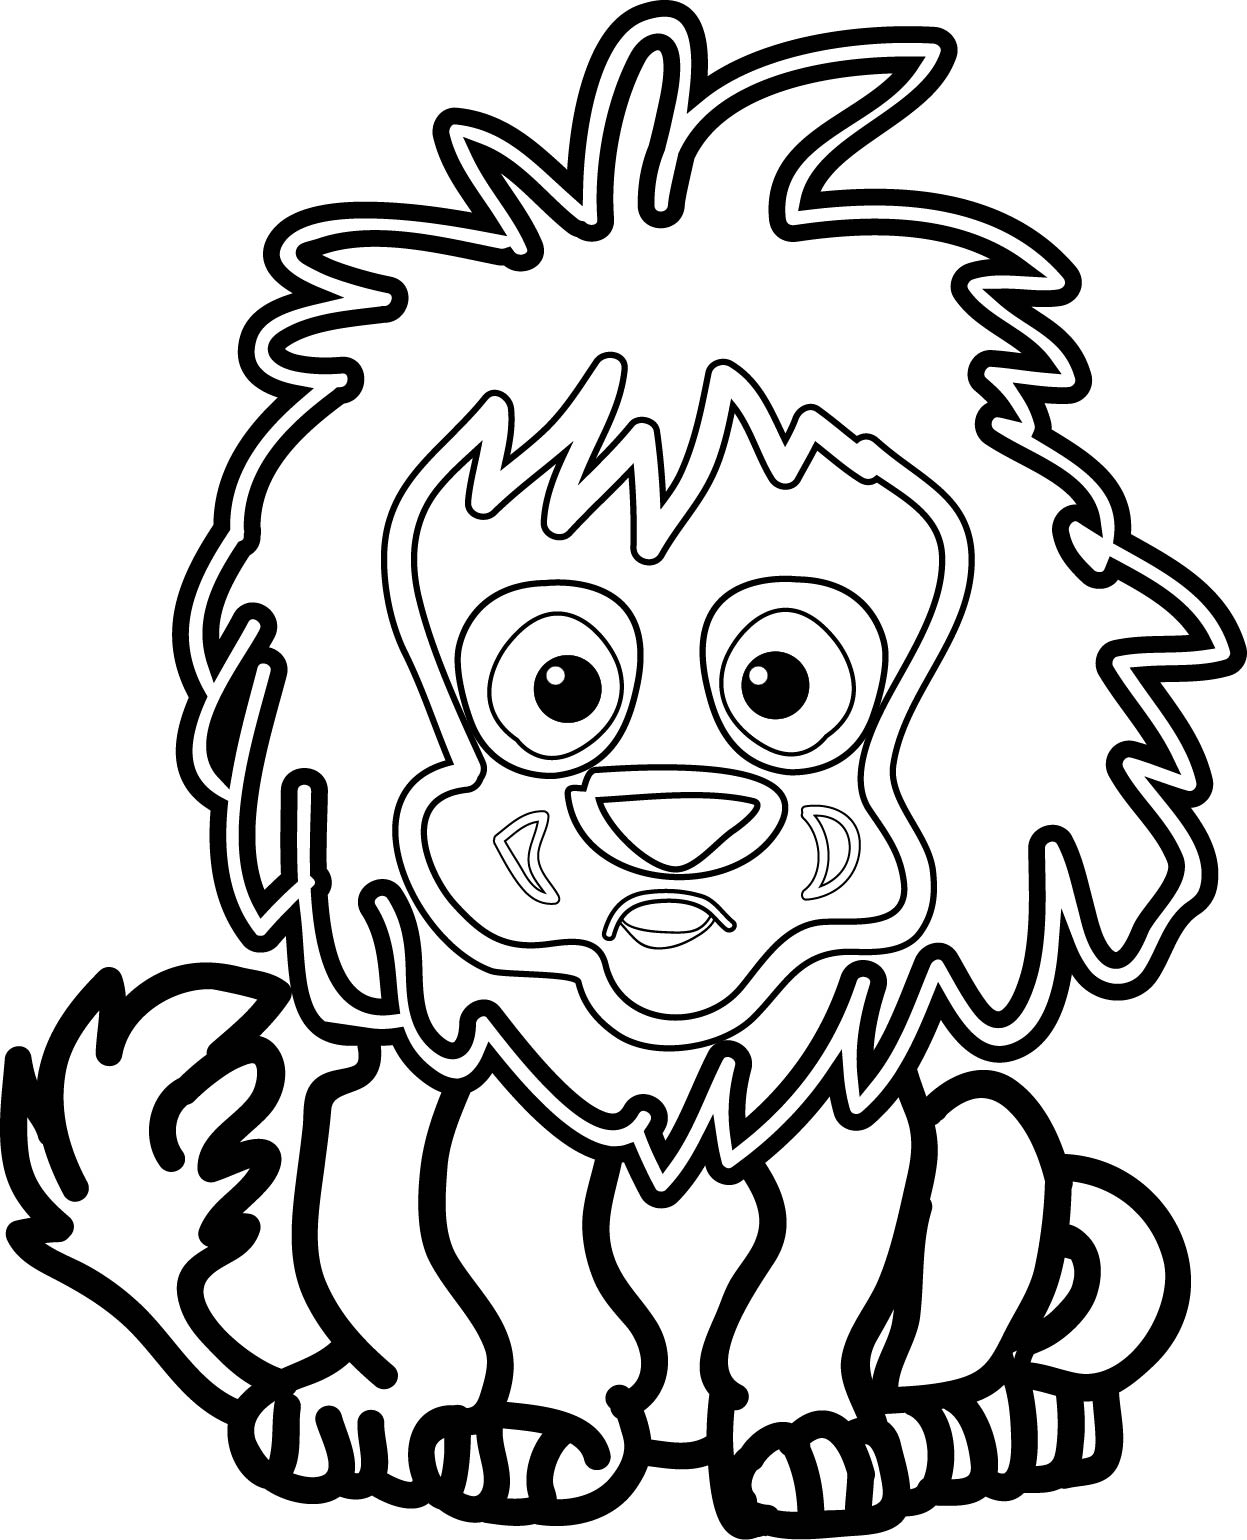 Cute Leon Coloring Page